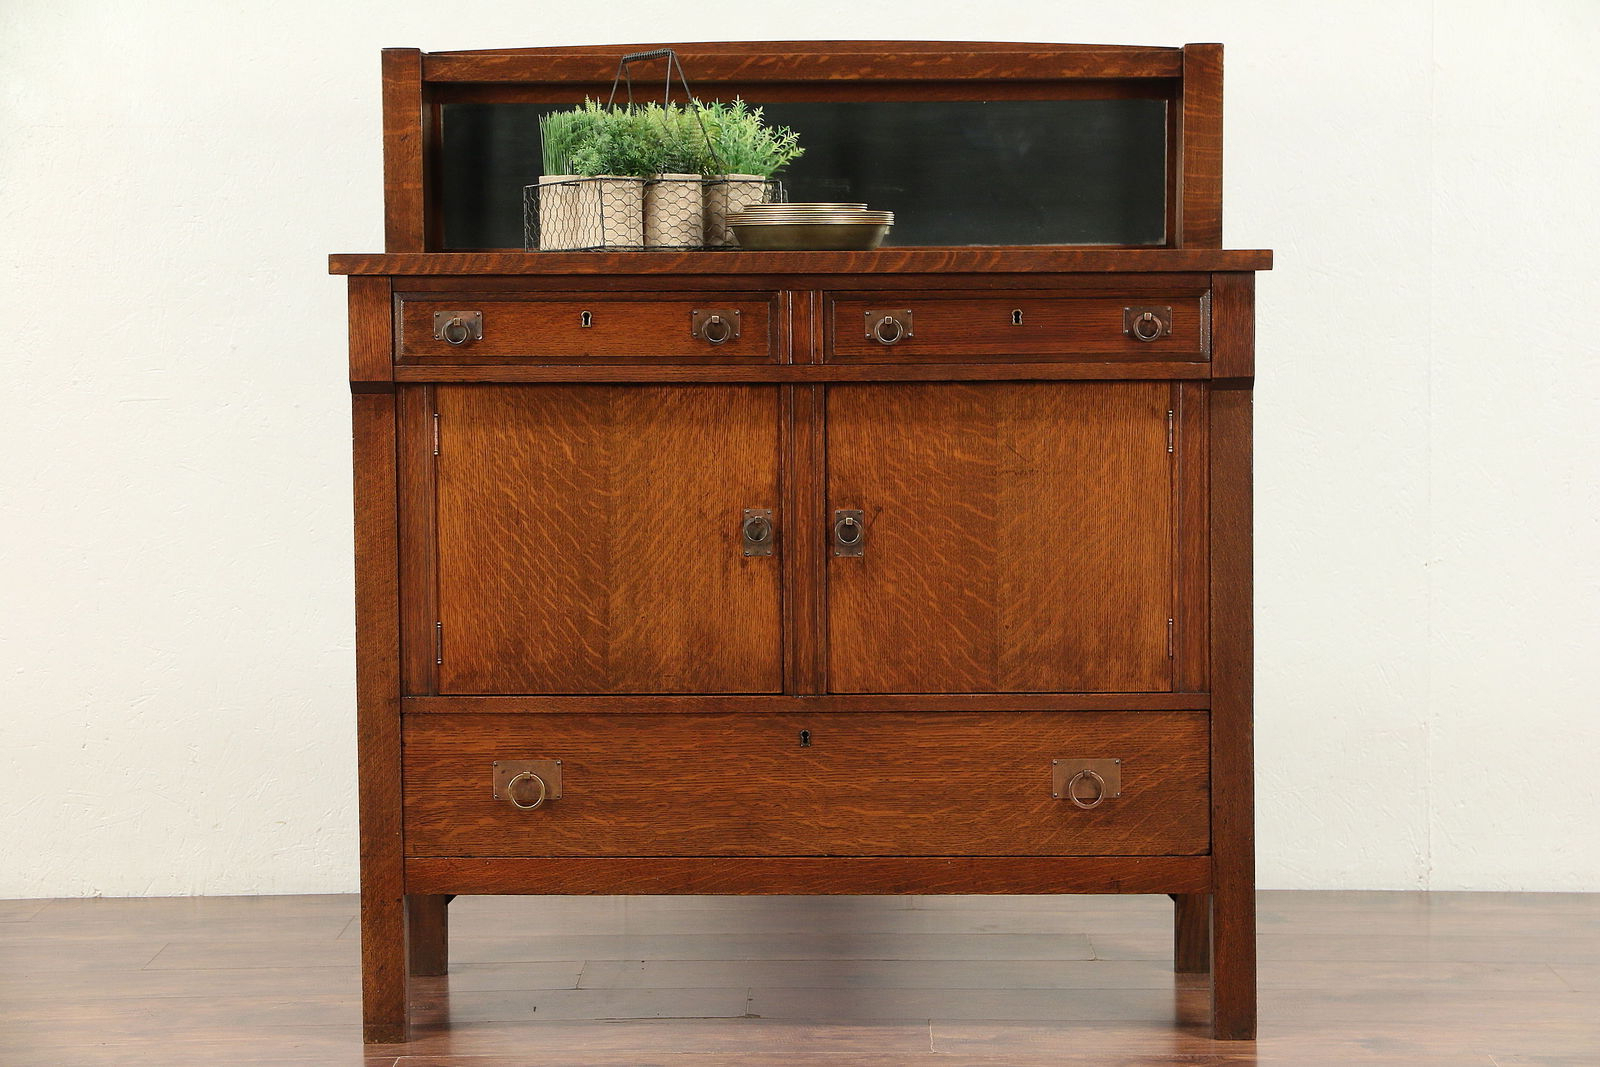 Arts & Crafts Mission Oak Antique Craftsman Sideboard, Server Pertaining To 2019 Craftsman Sideboards (View 1 of 20)